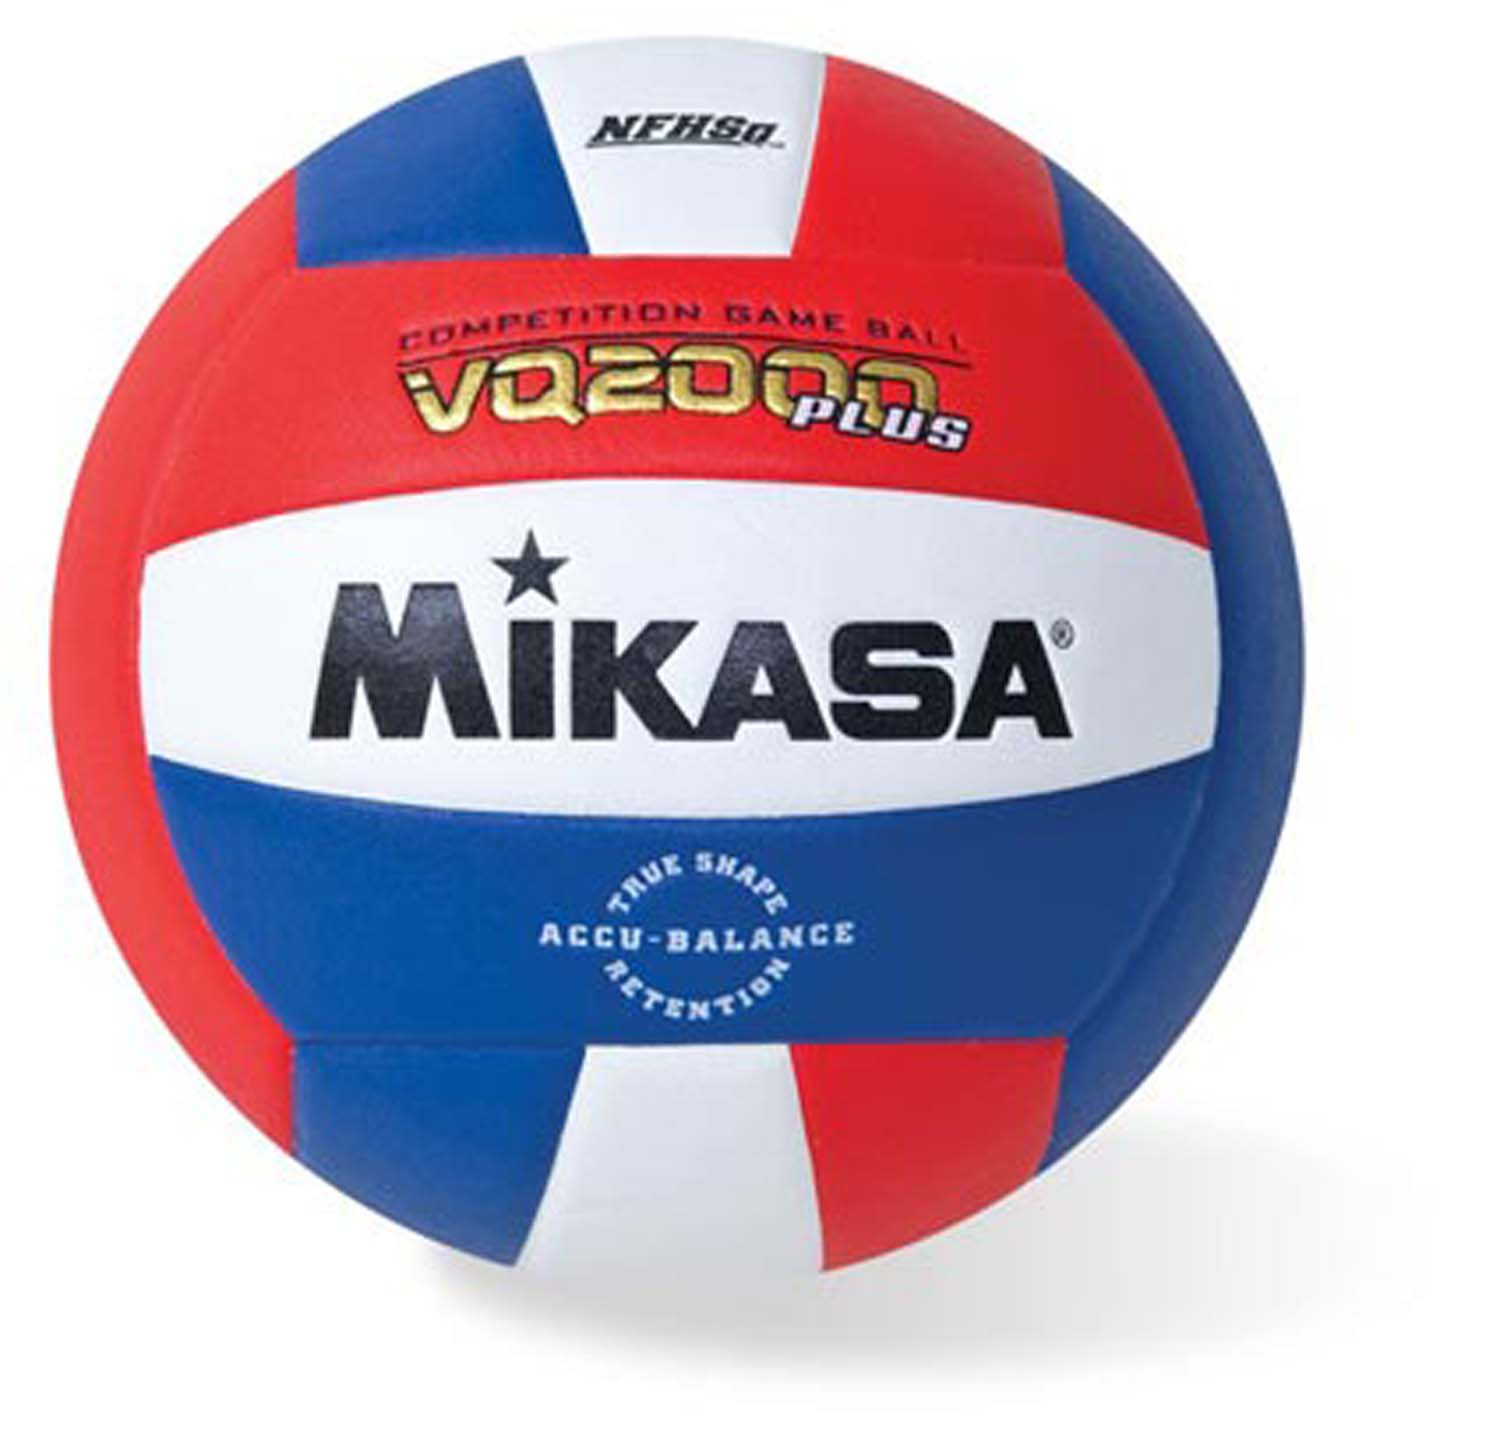 MIKASA SPORTS VQ2000 MICRO CELL INDOOR VOLLEYBALL